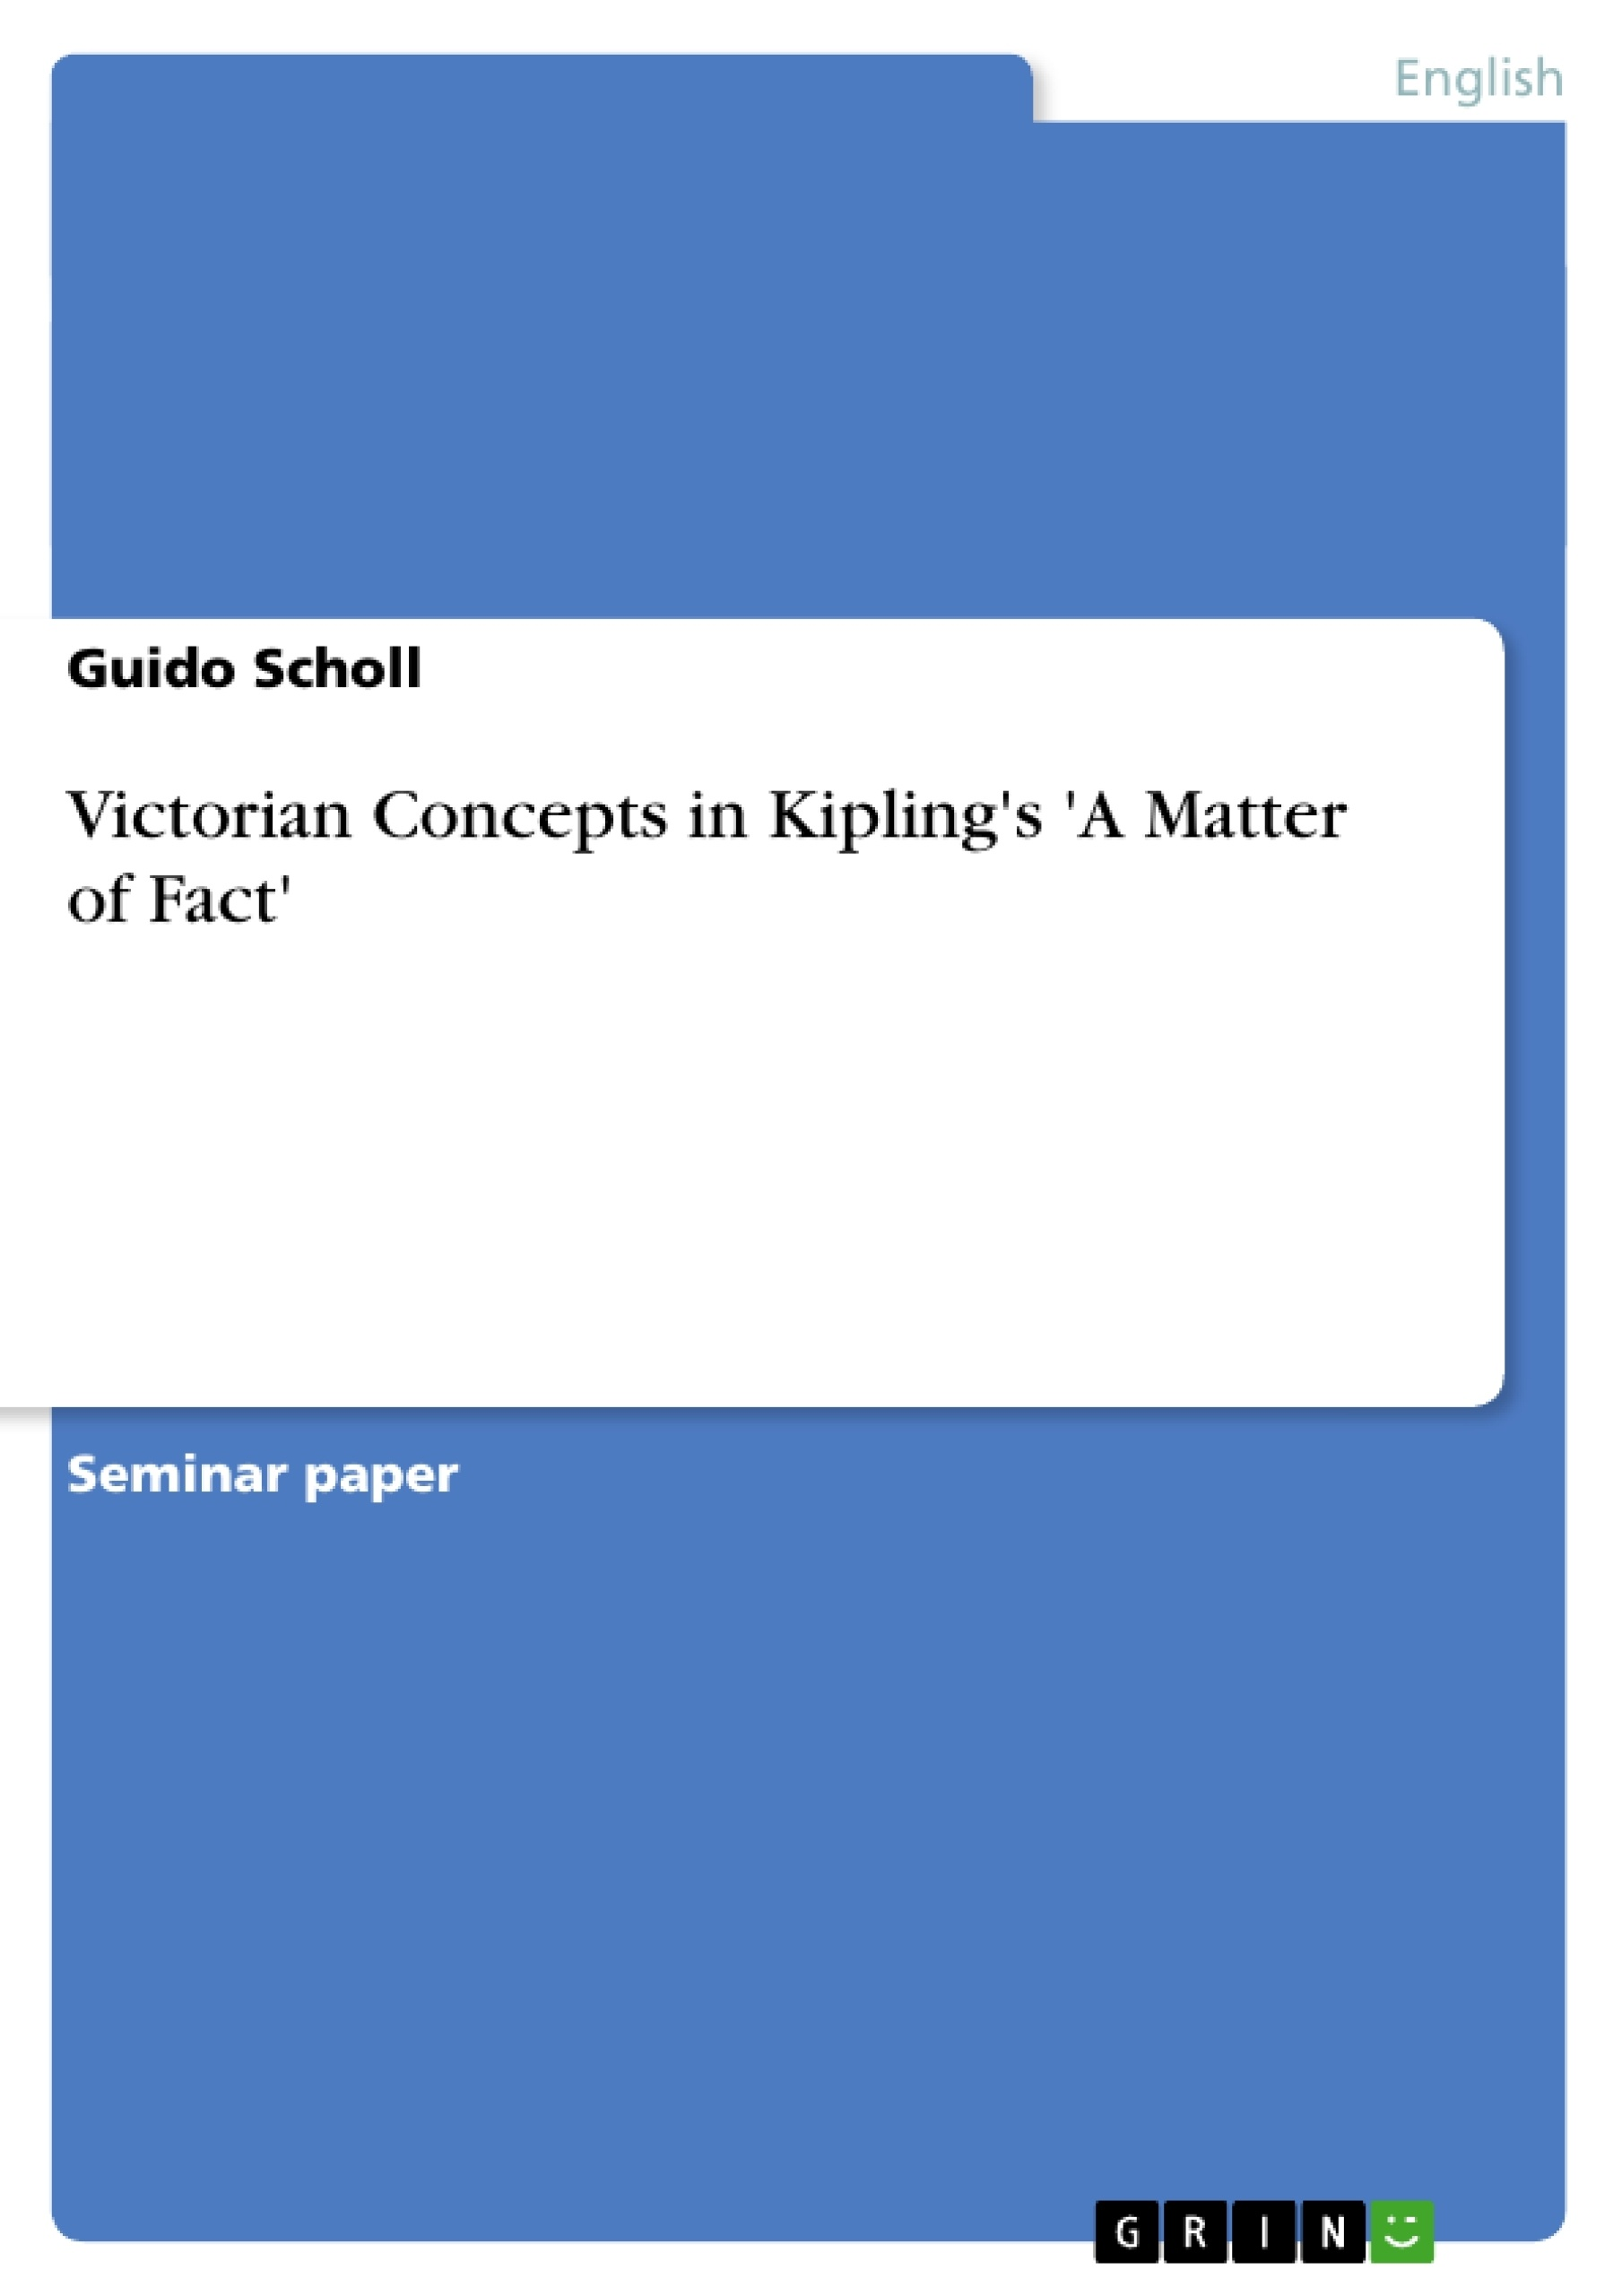 Title: Victorian Concepts in Kipling's 'A Matter of Fact'